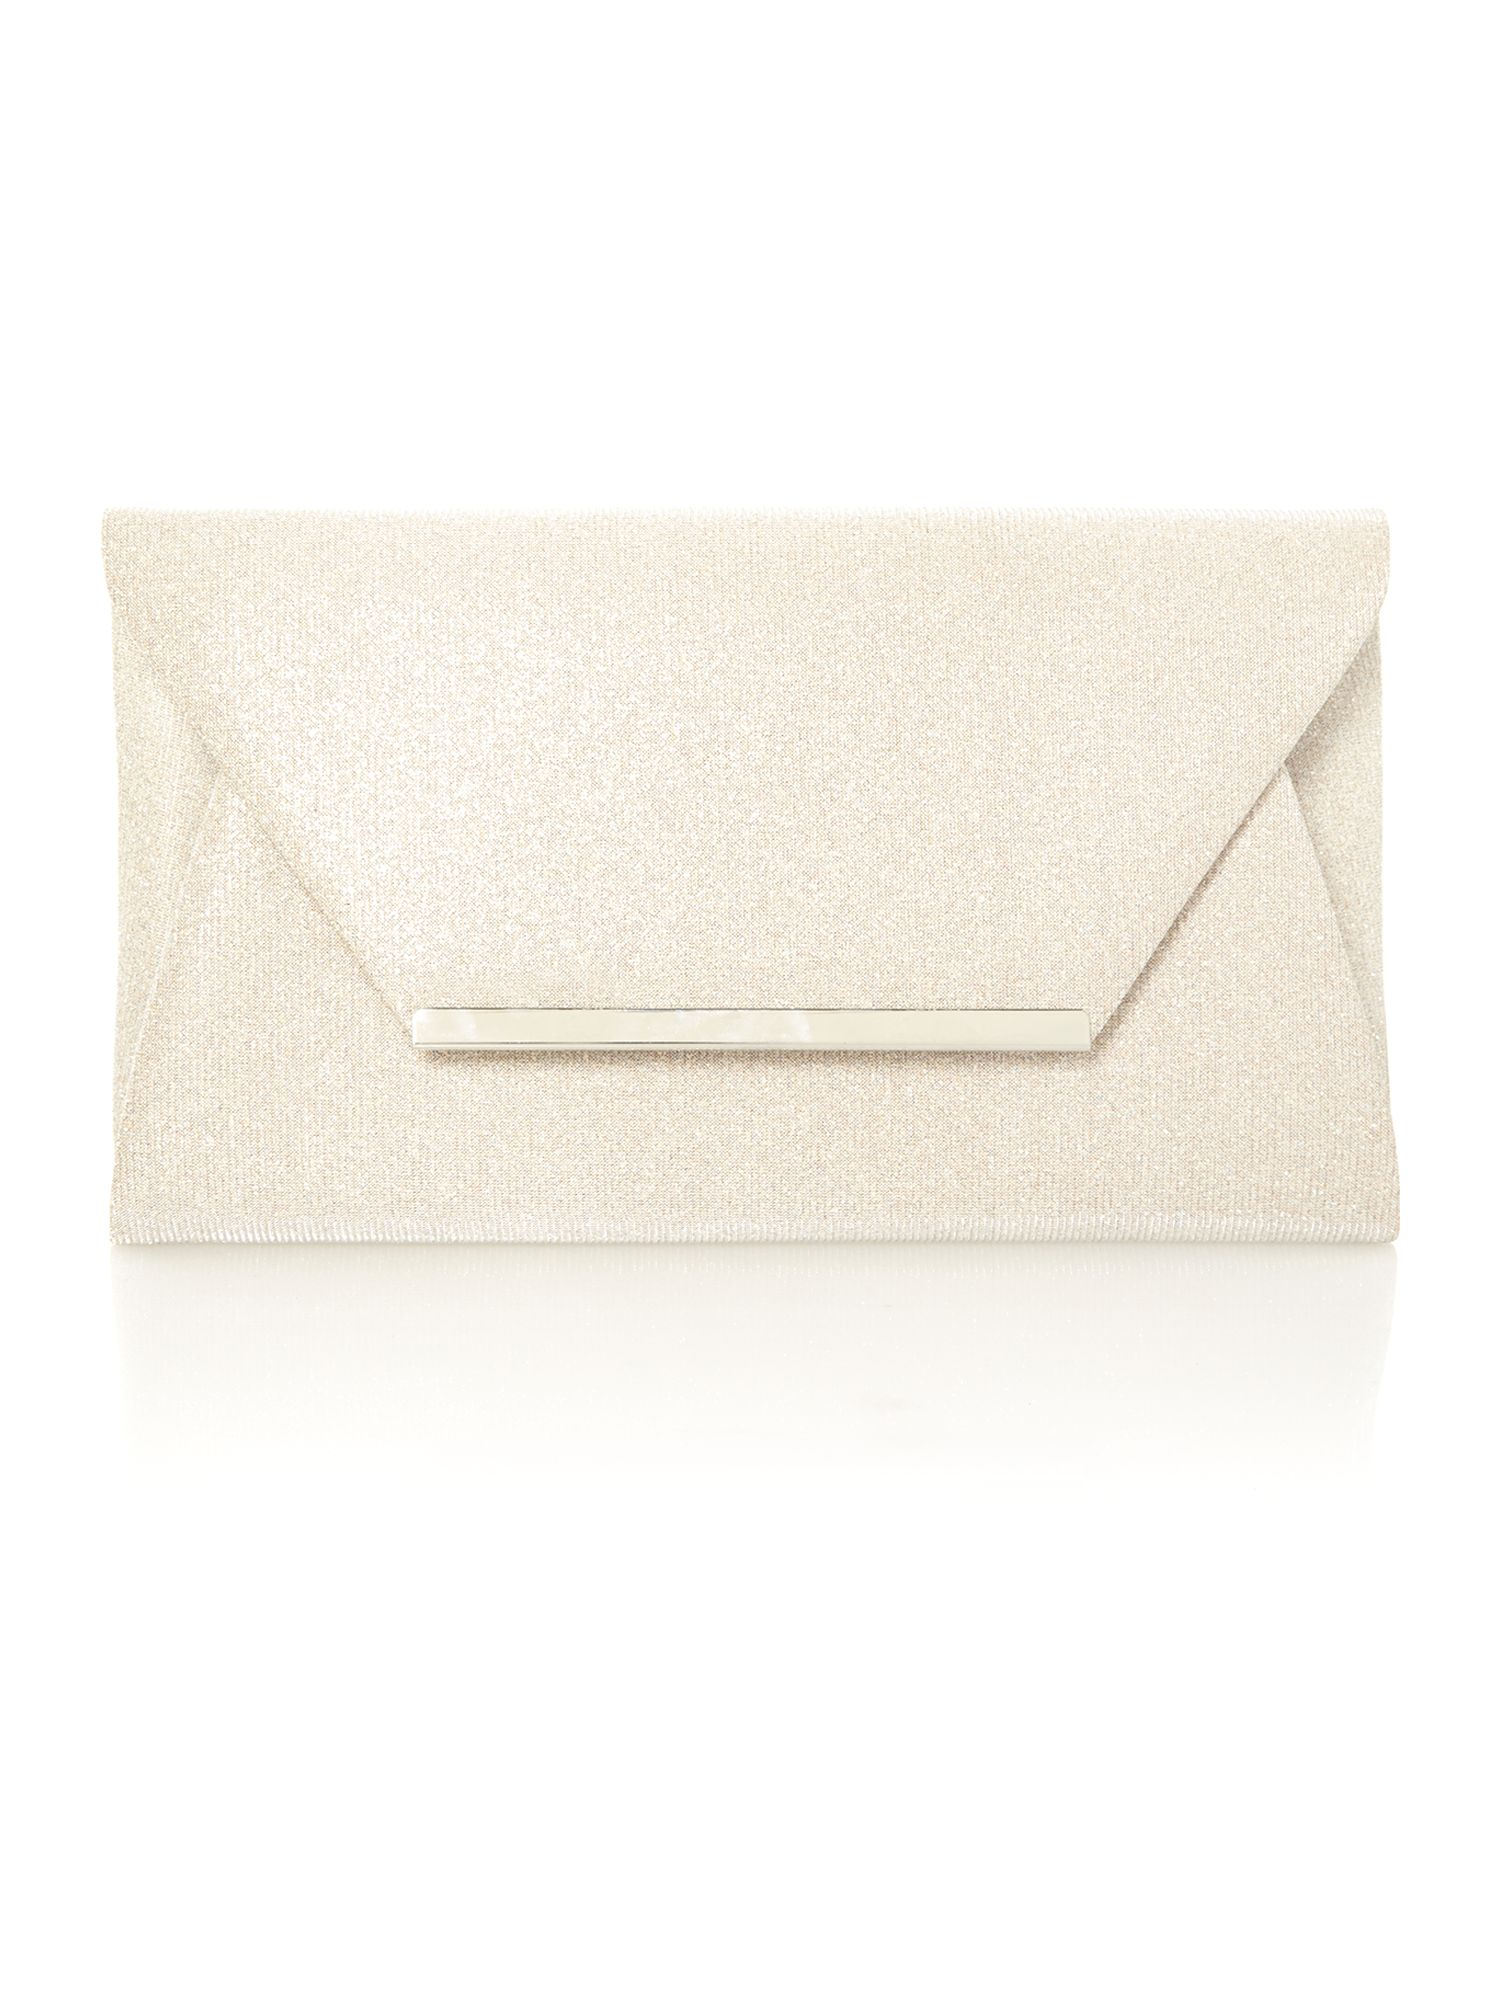 Elias envelope clutch bag